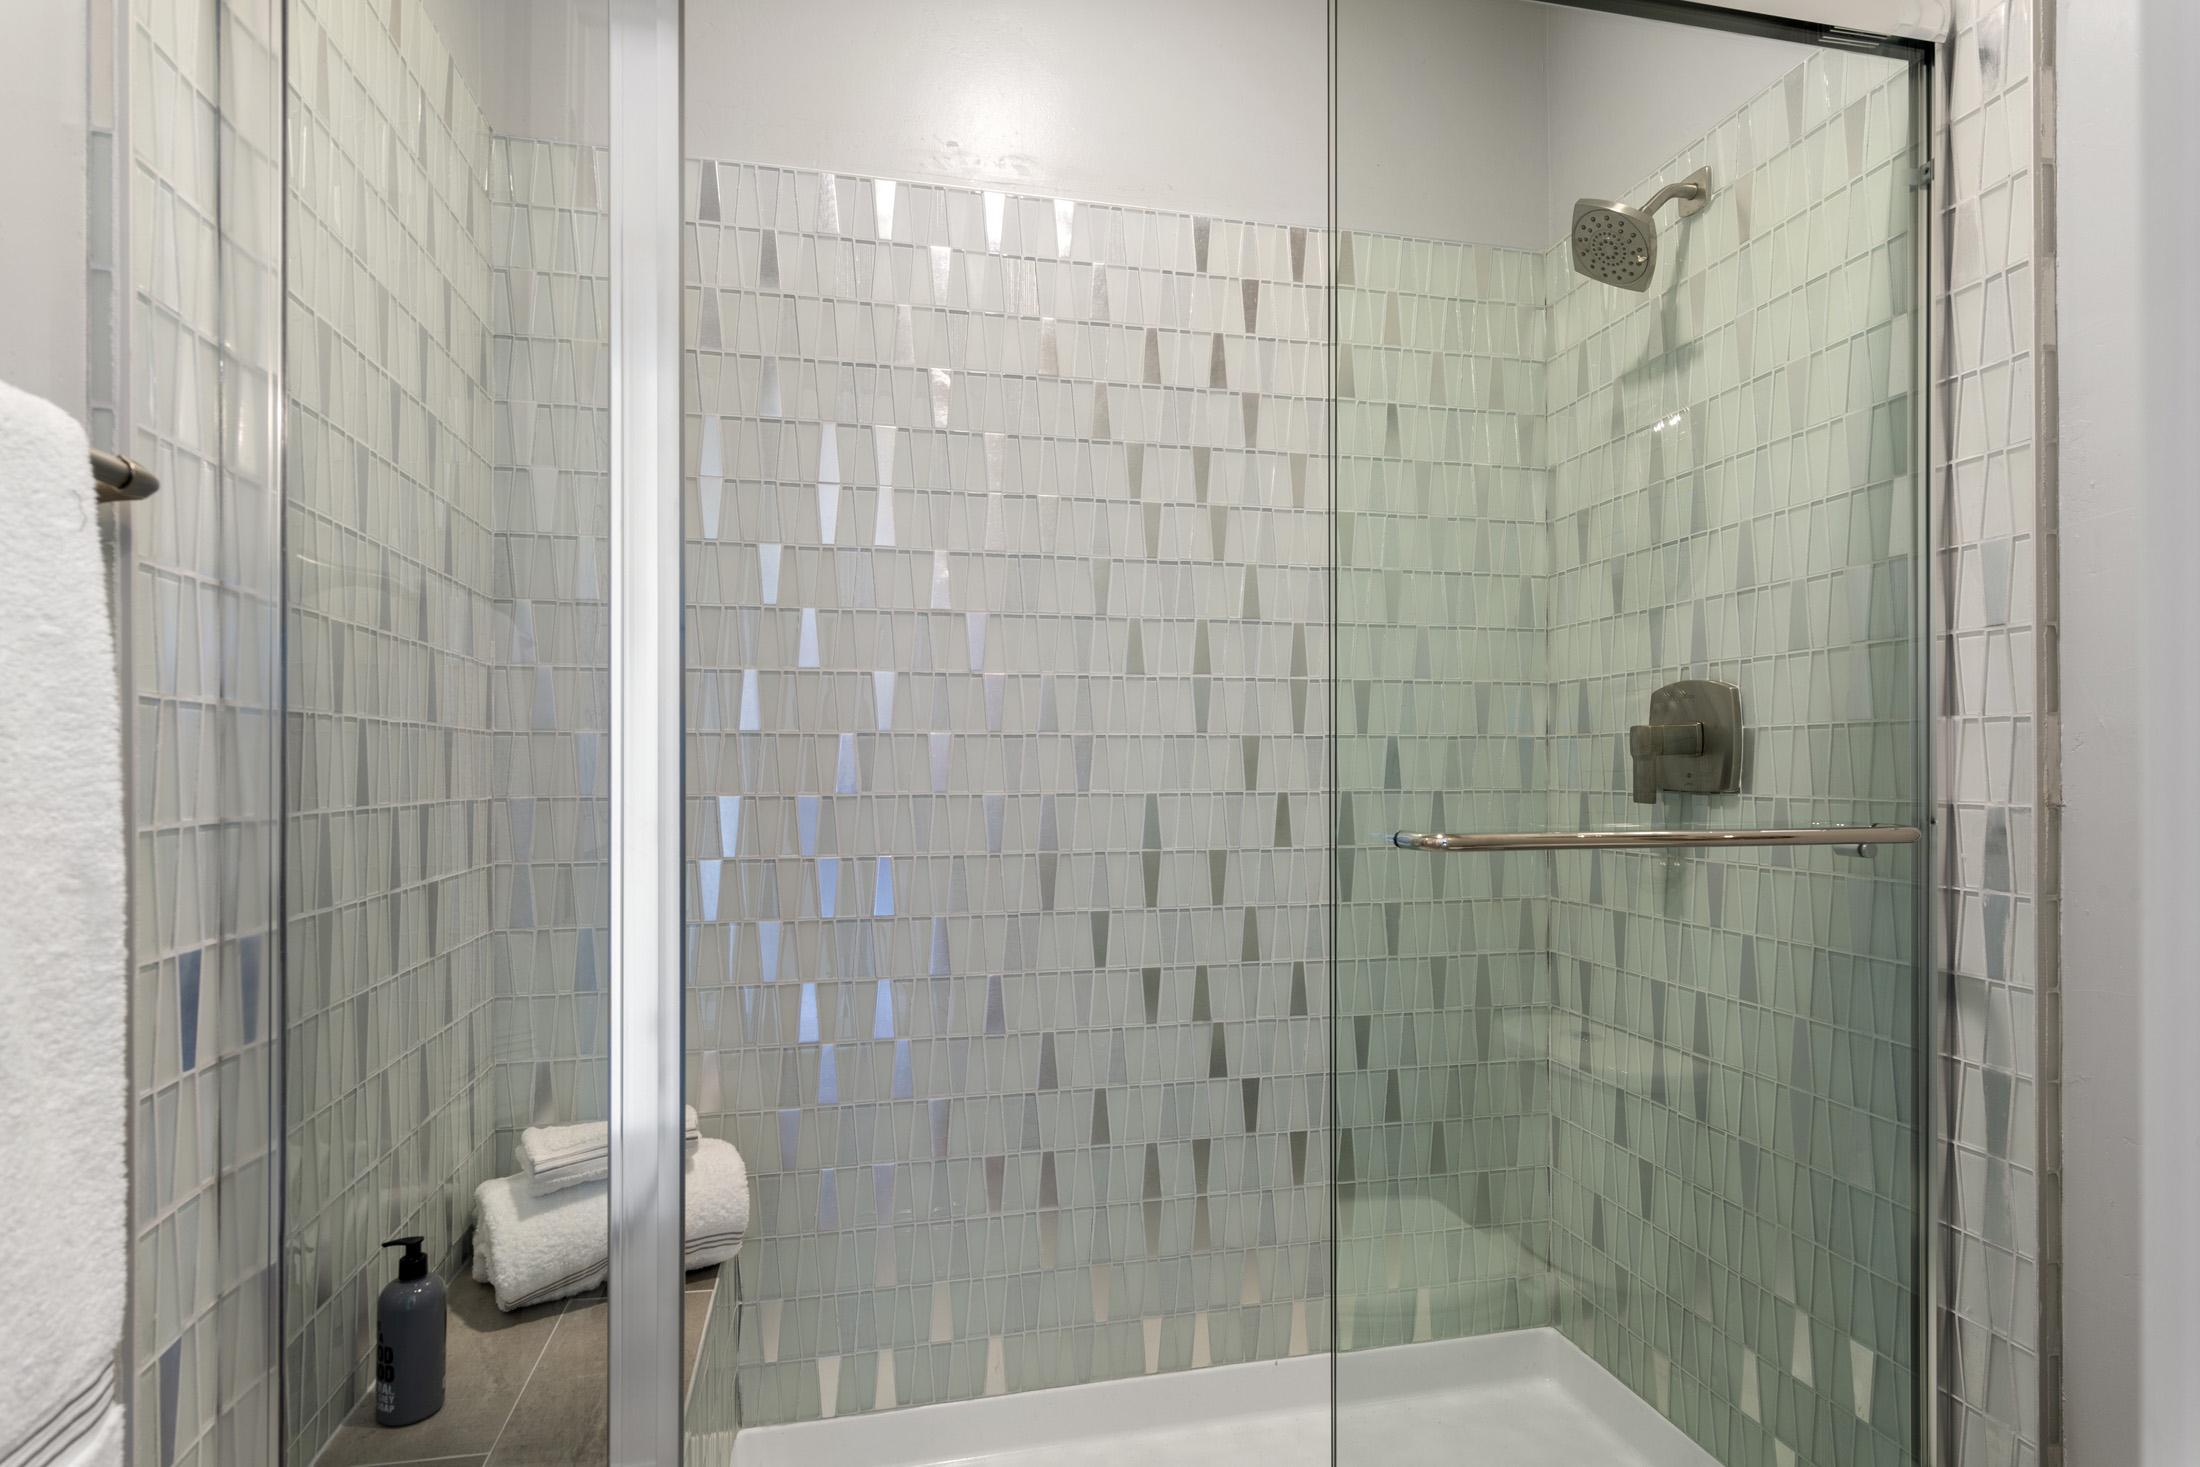 Bathroom featured in the Plan 2 By Next Generation Capital  in Sacramento, CA